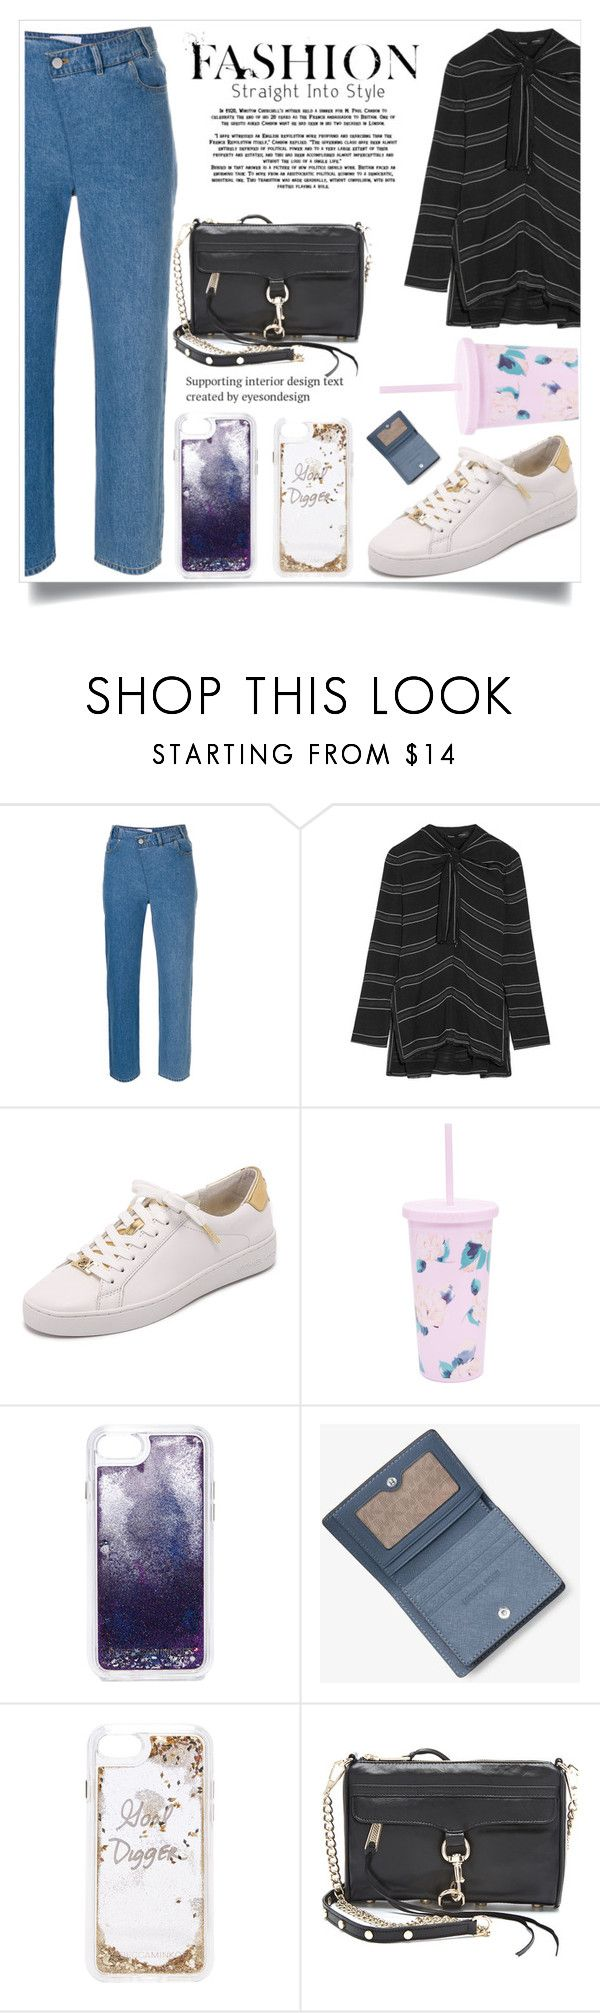 """Knotted Tie-front Striped Crepe Top"" by camry-brynn ❤ liked on Polyvore featuring Christian Wijnants, Proenza Schouler, ban.do and Rebecca Minkoff"